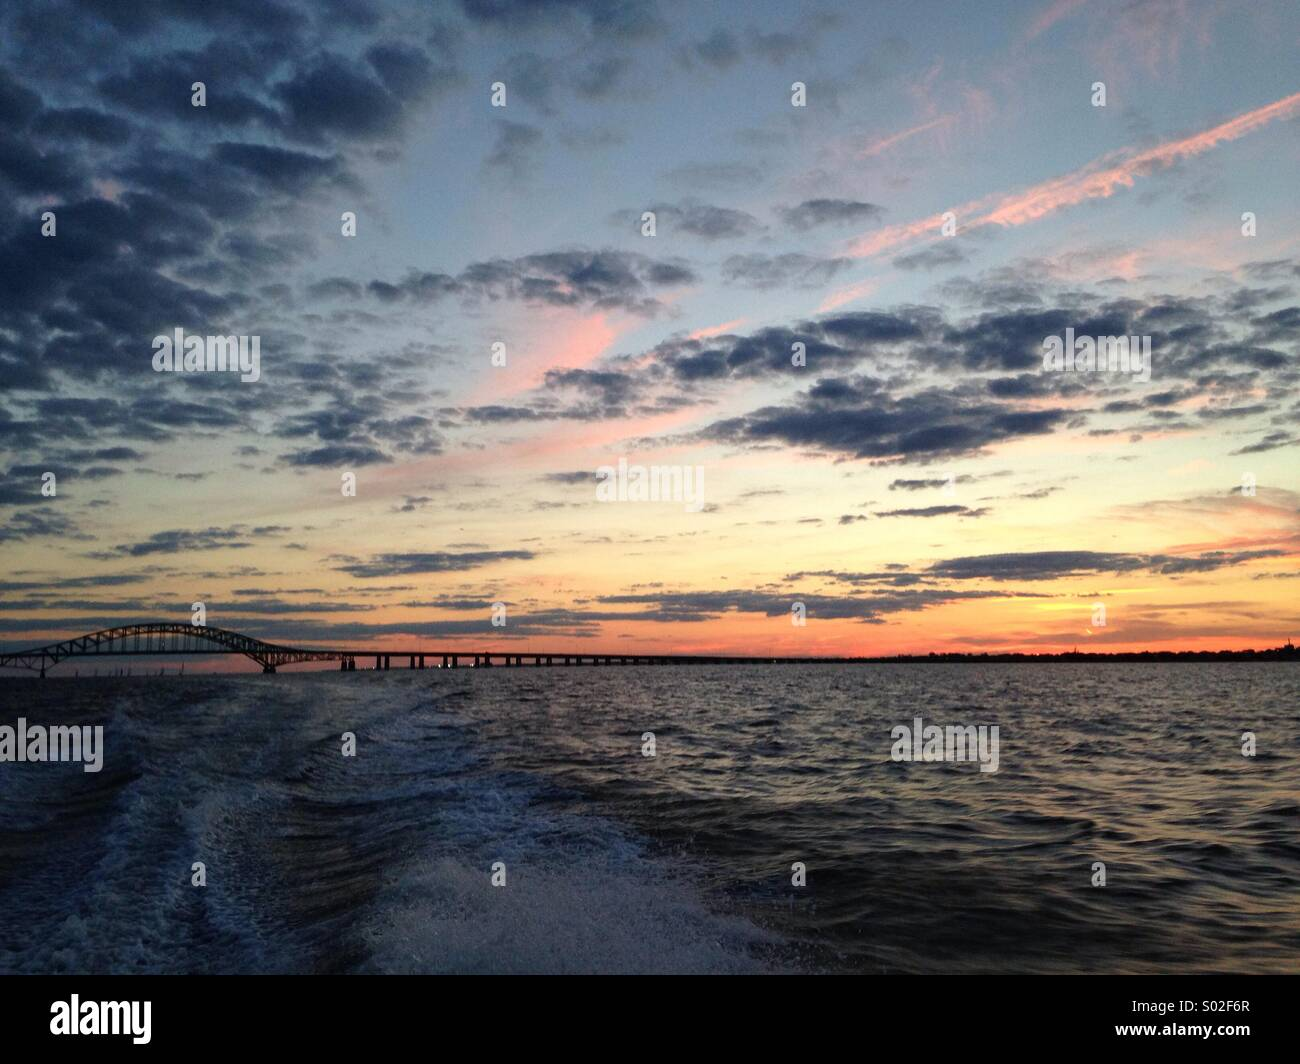 Sunset summer time - Stock Image